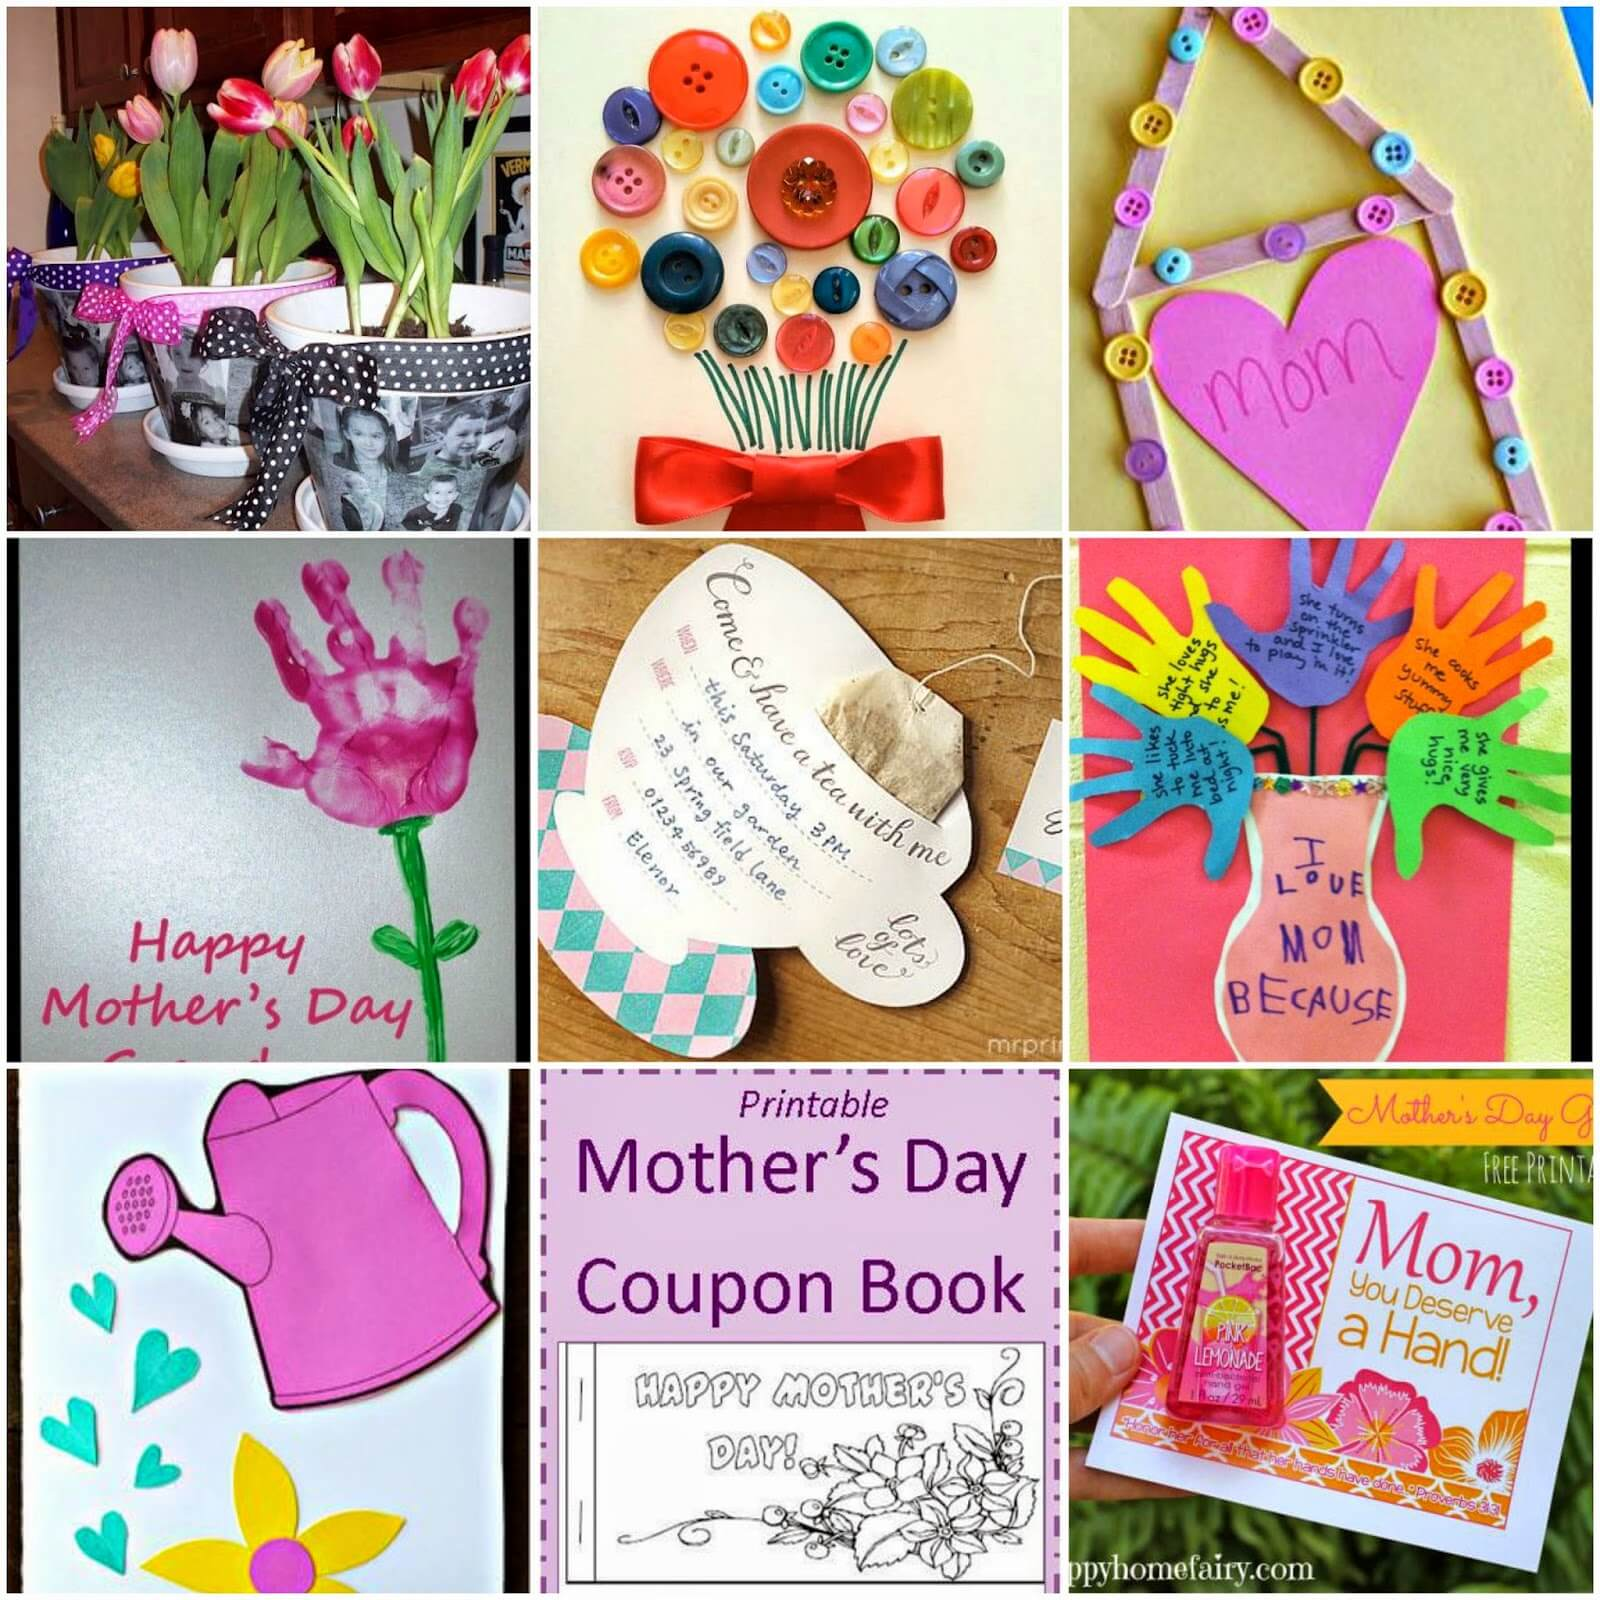 18 Mother's Day Crafts